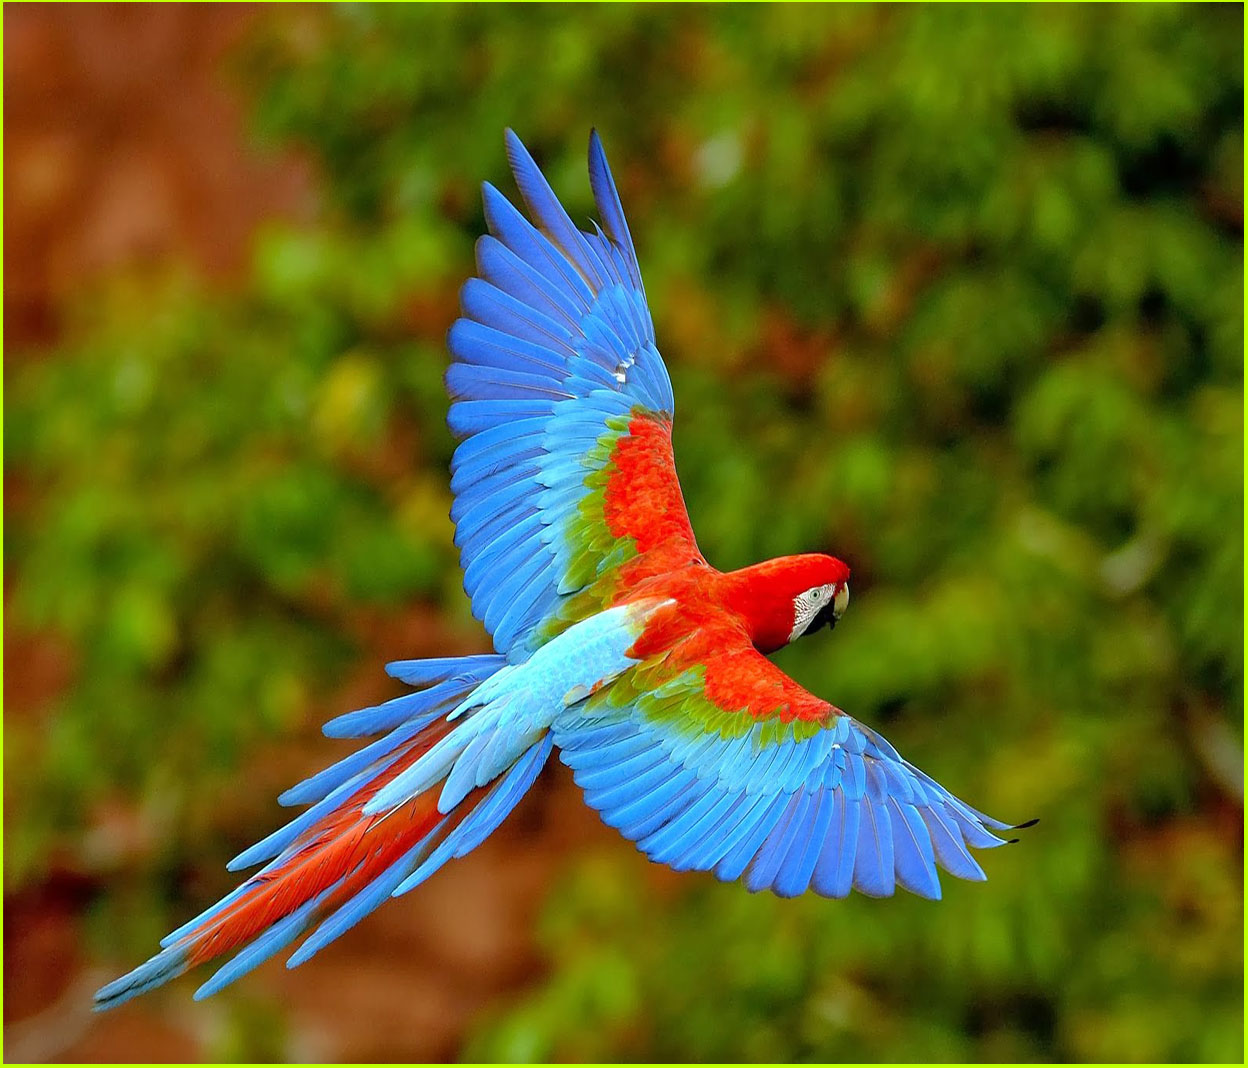 The most awesome bird in the world